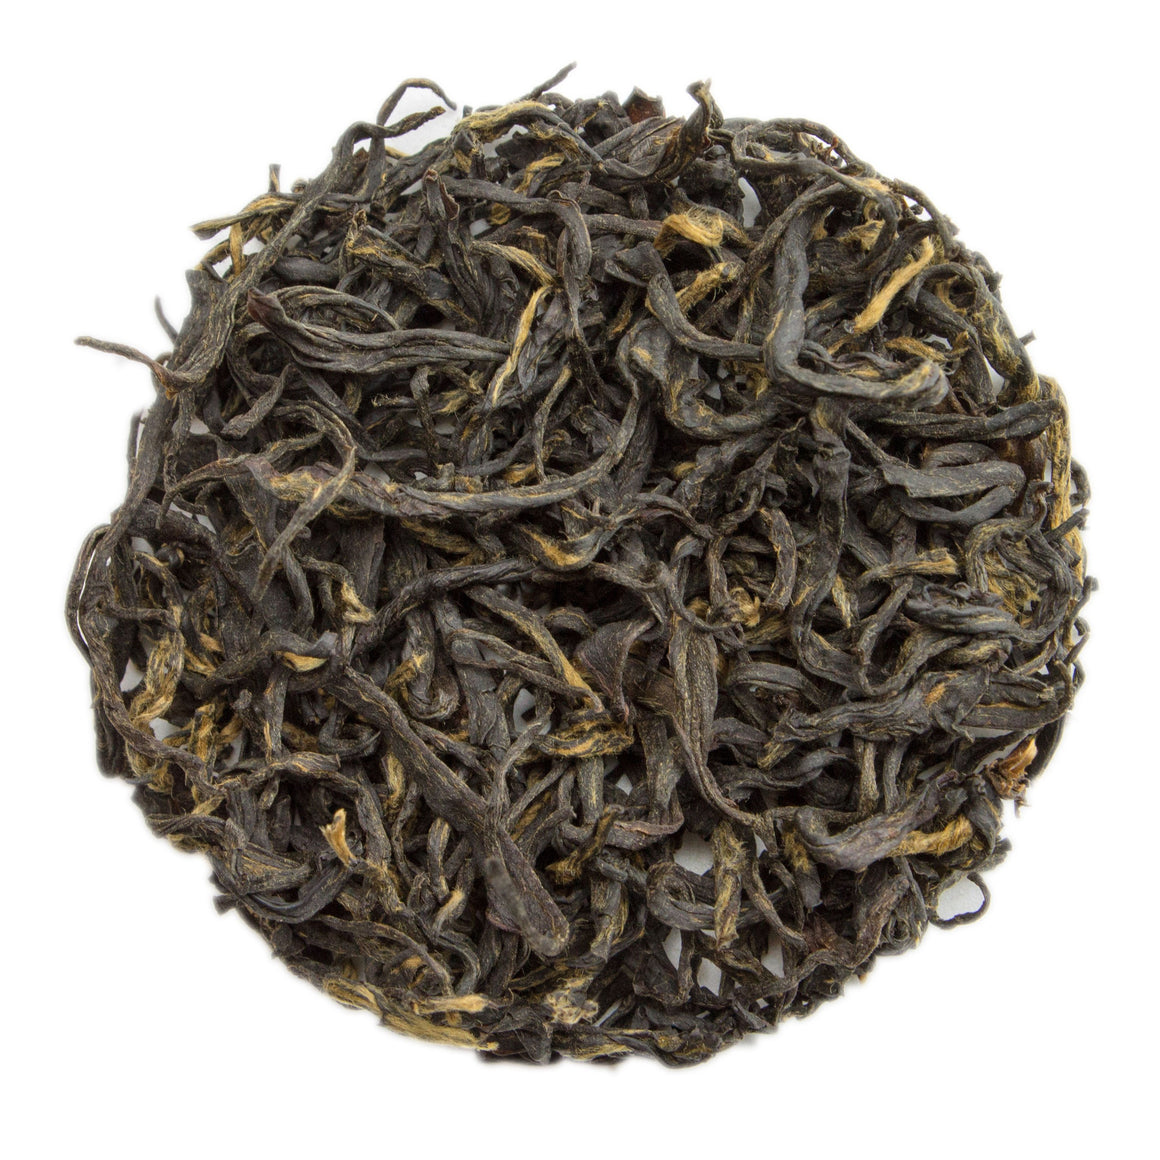 Finest Keemun Mao Feng Black Tea